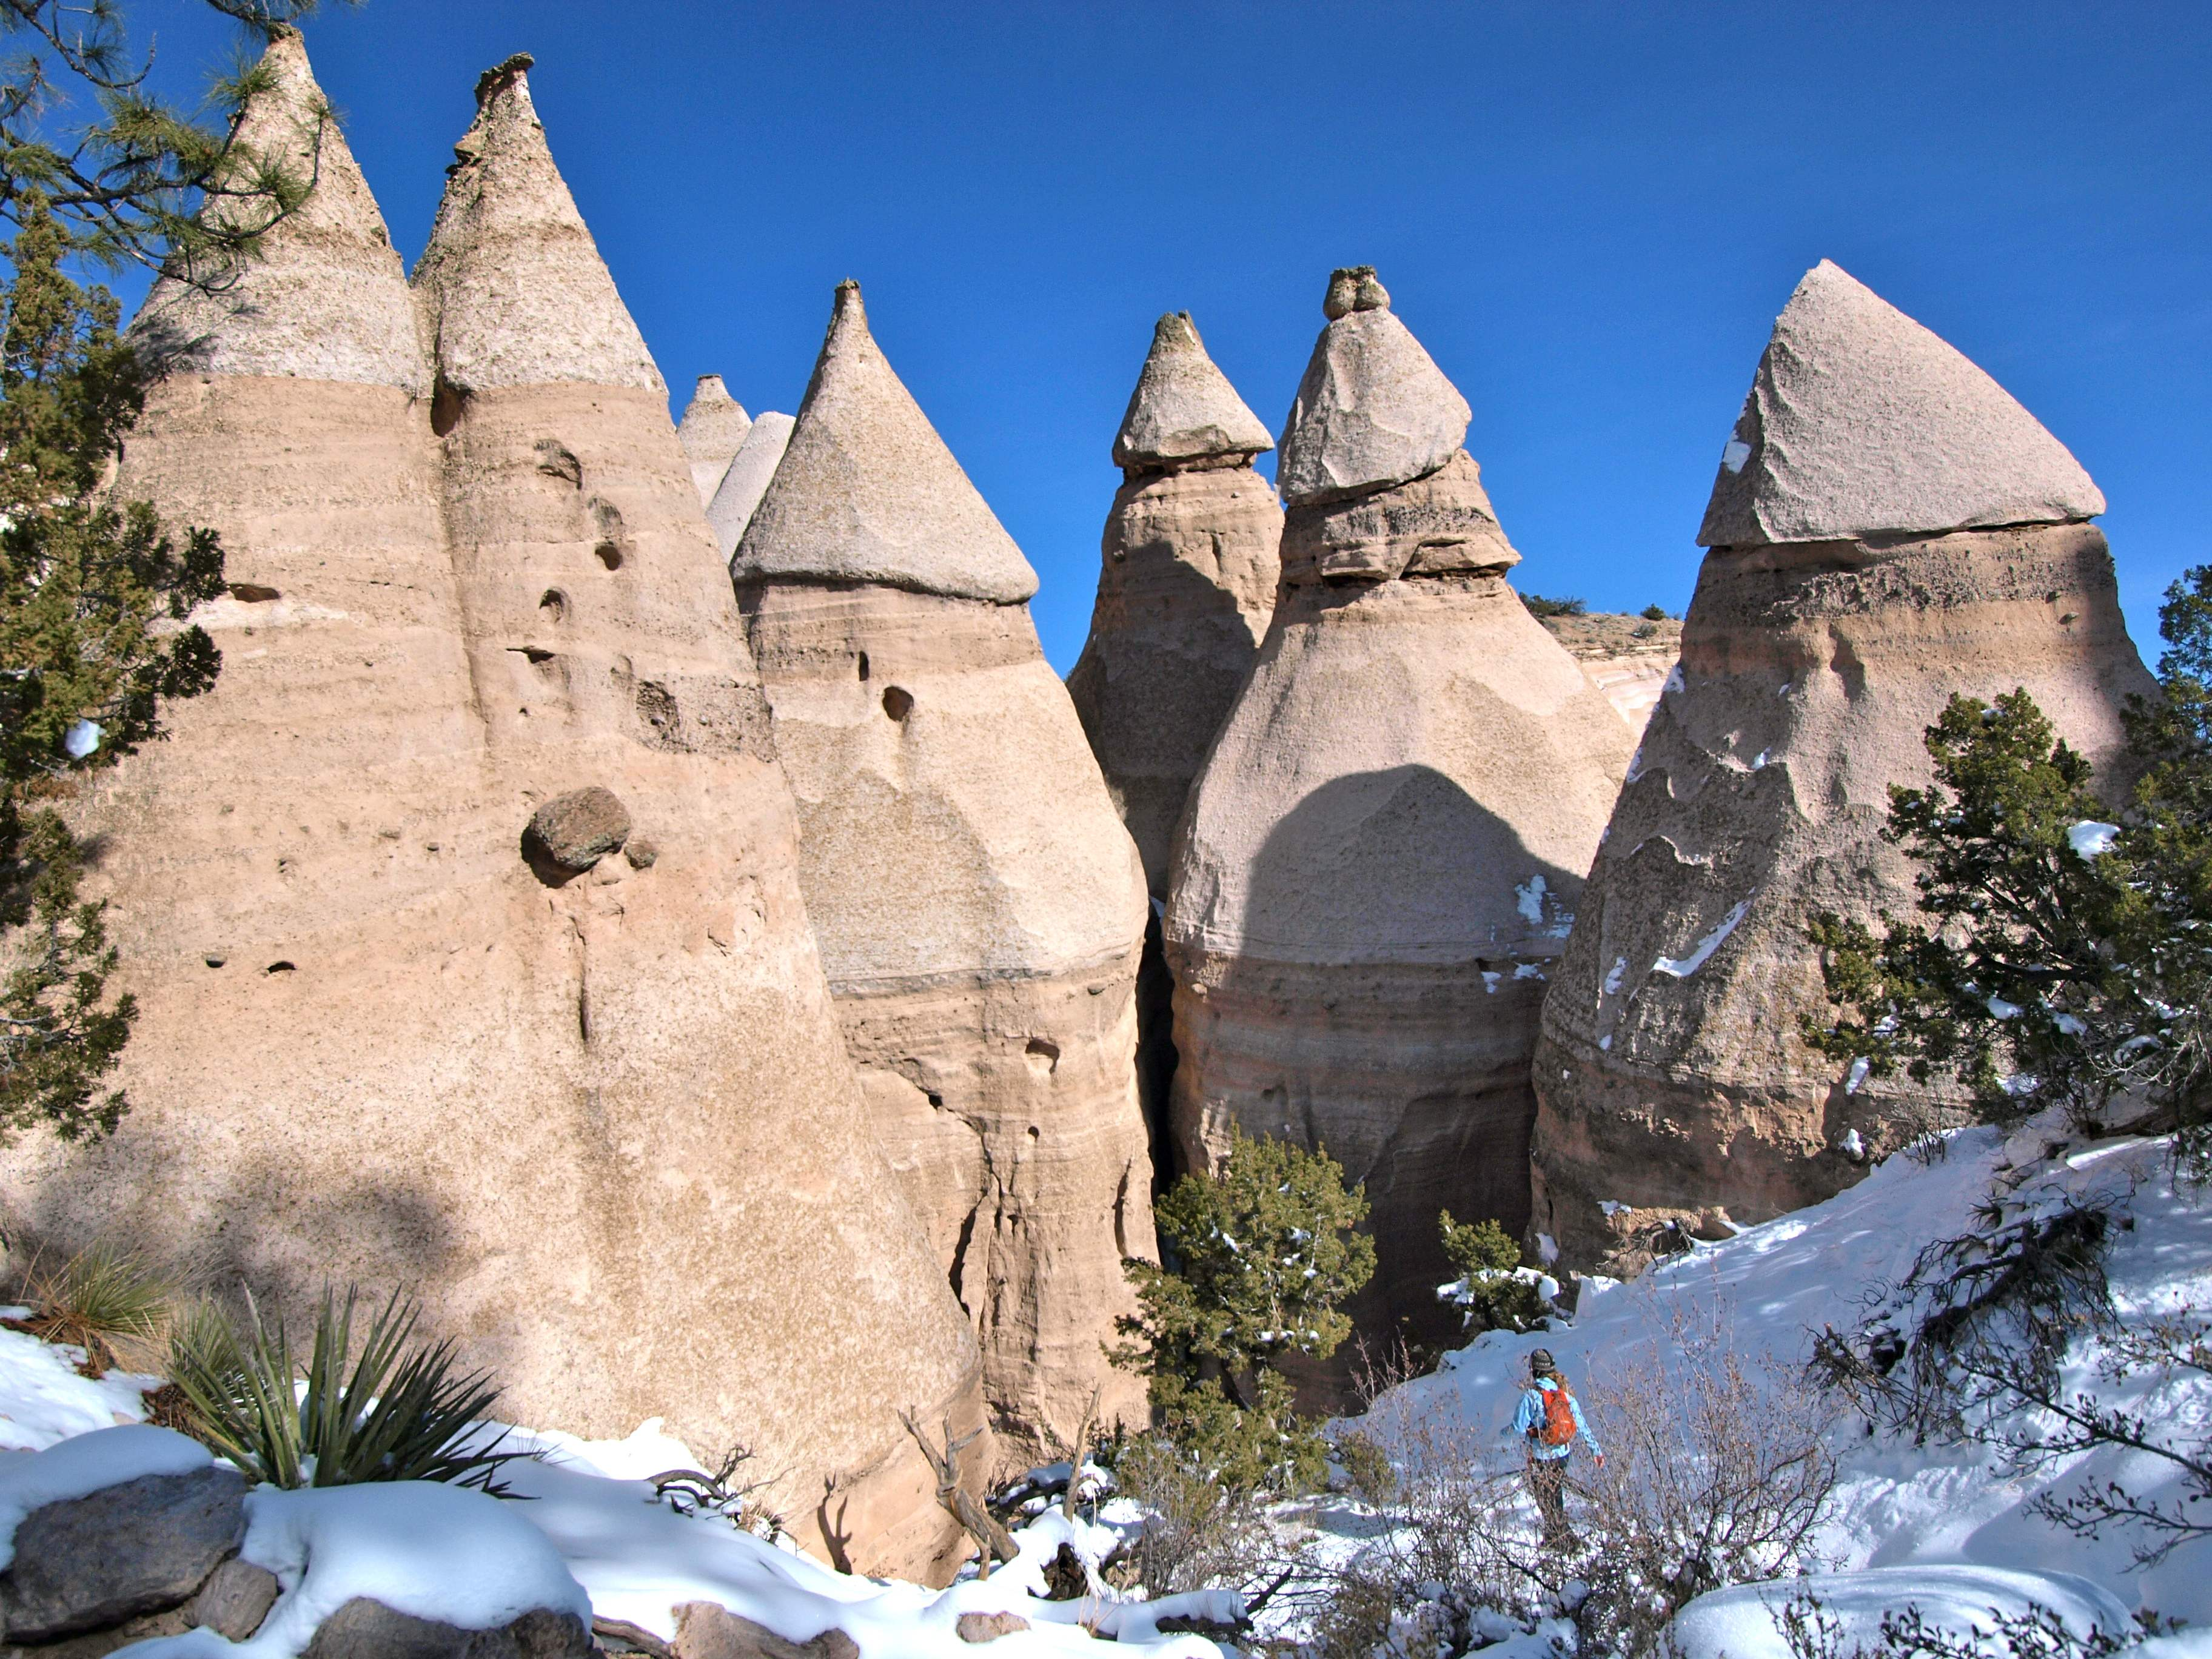 Tent Rocks & Best Hikes on Earth: Tent Rocks | Travels with the Blonde Coyote